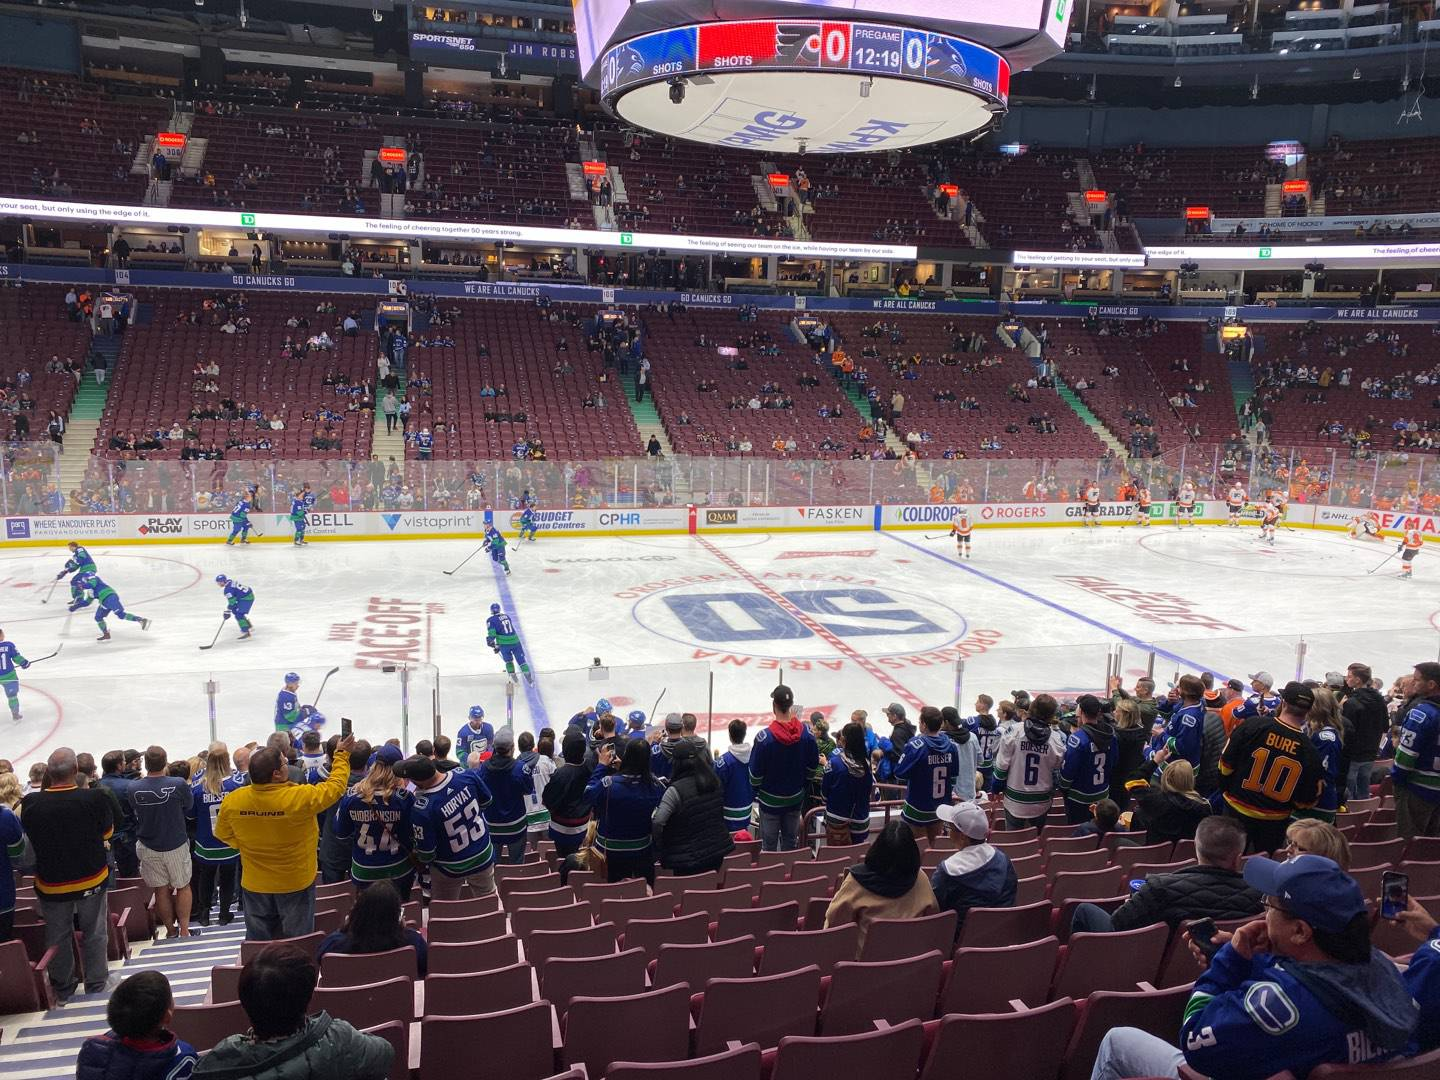 Rogers Arena Section 118 Row 18 Seat 3